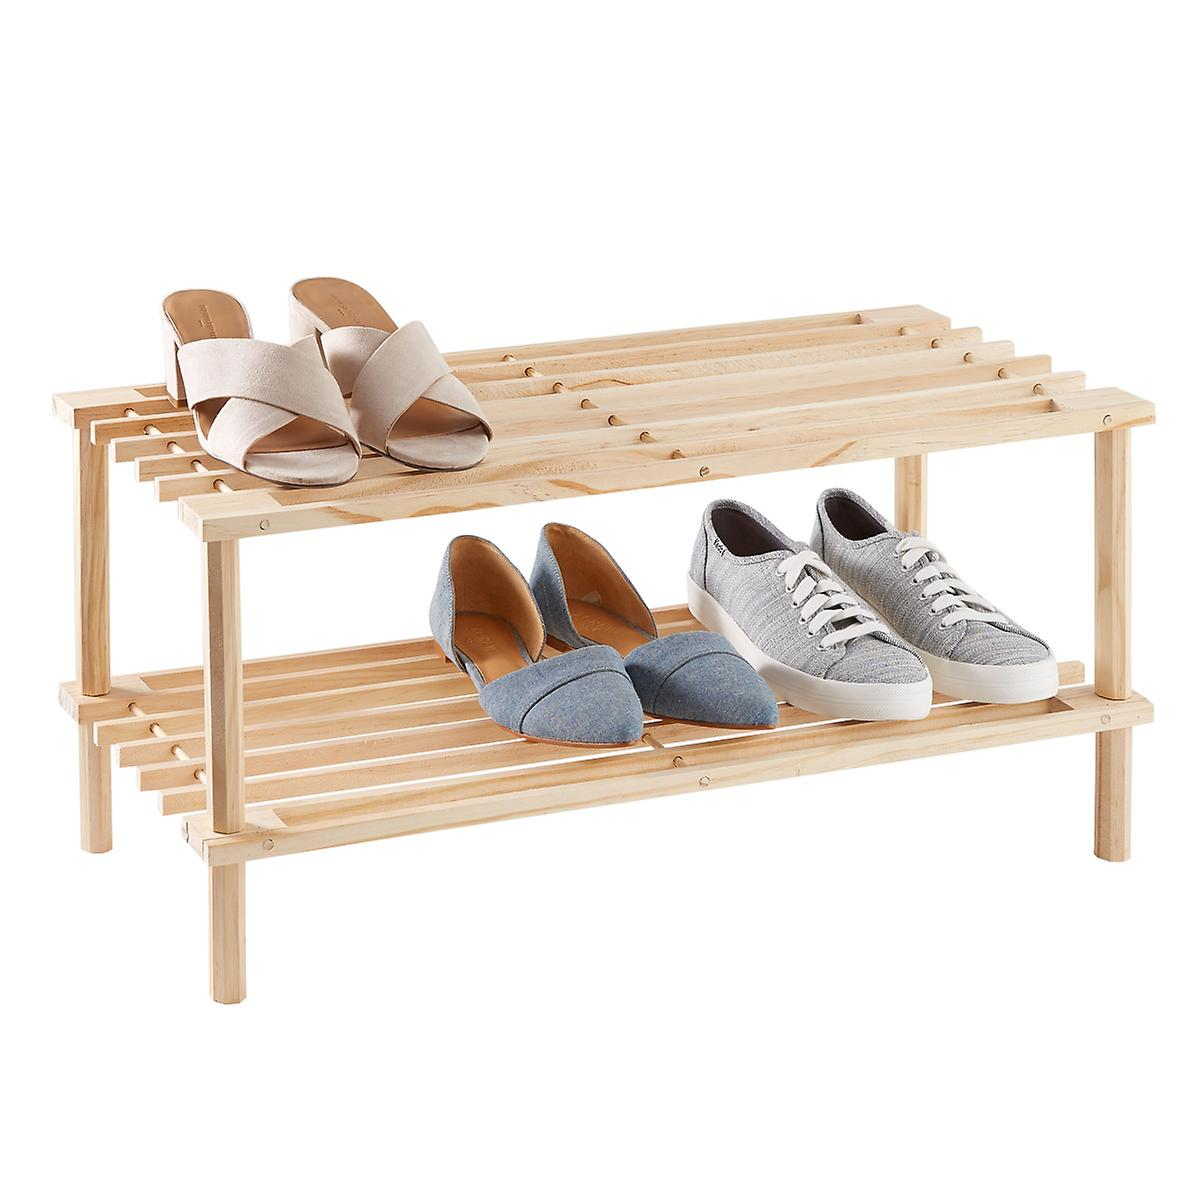 2-Tier Shoe Rack